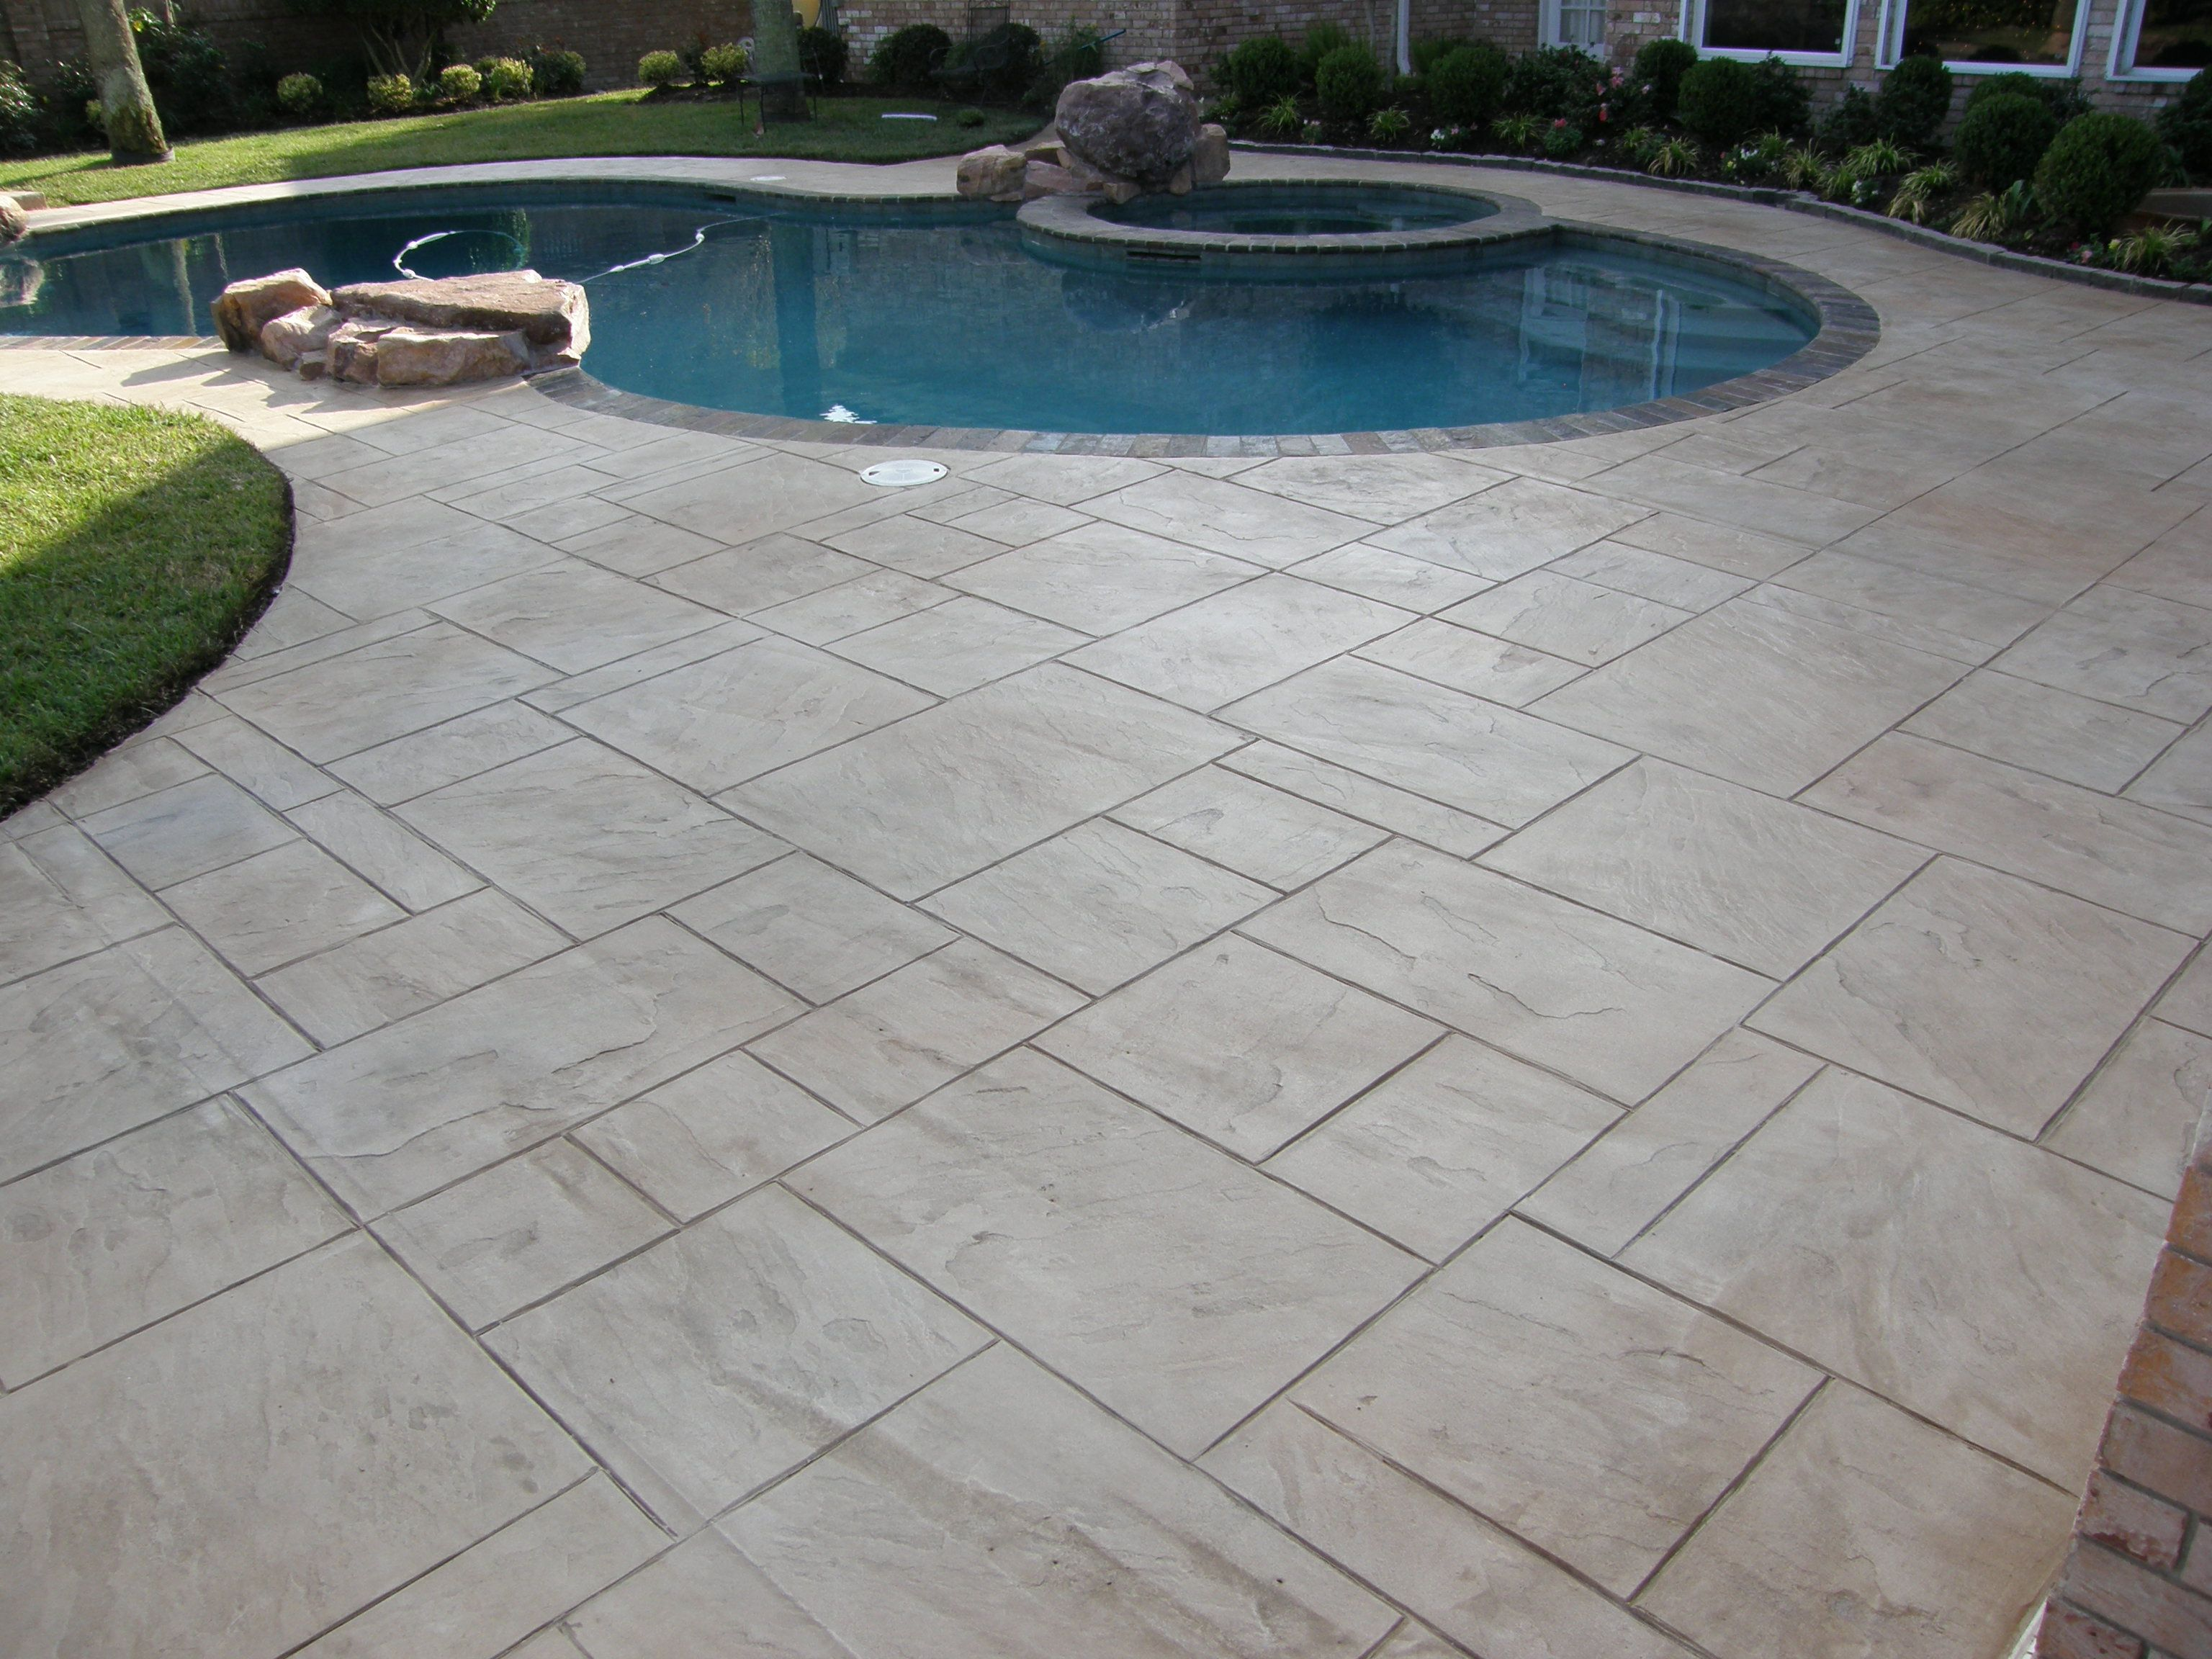 Yorkstone Stamped Overlay Over Existing Pea Gravel Pool Deck Concrete  Overlay, Stamped Concrete, Concrete